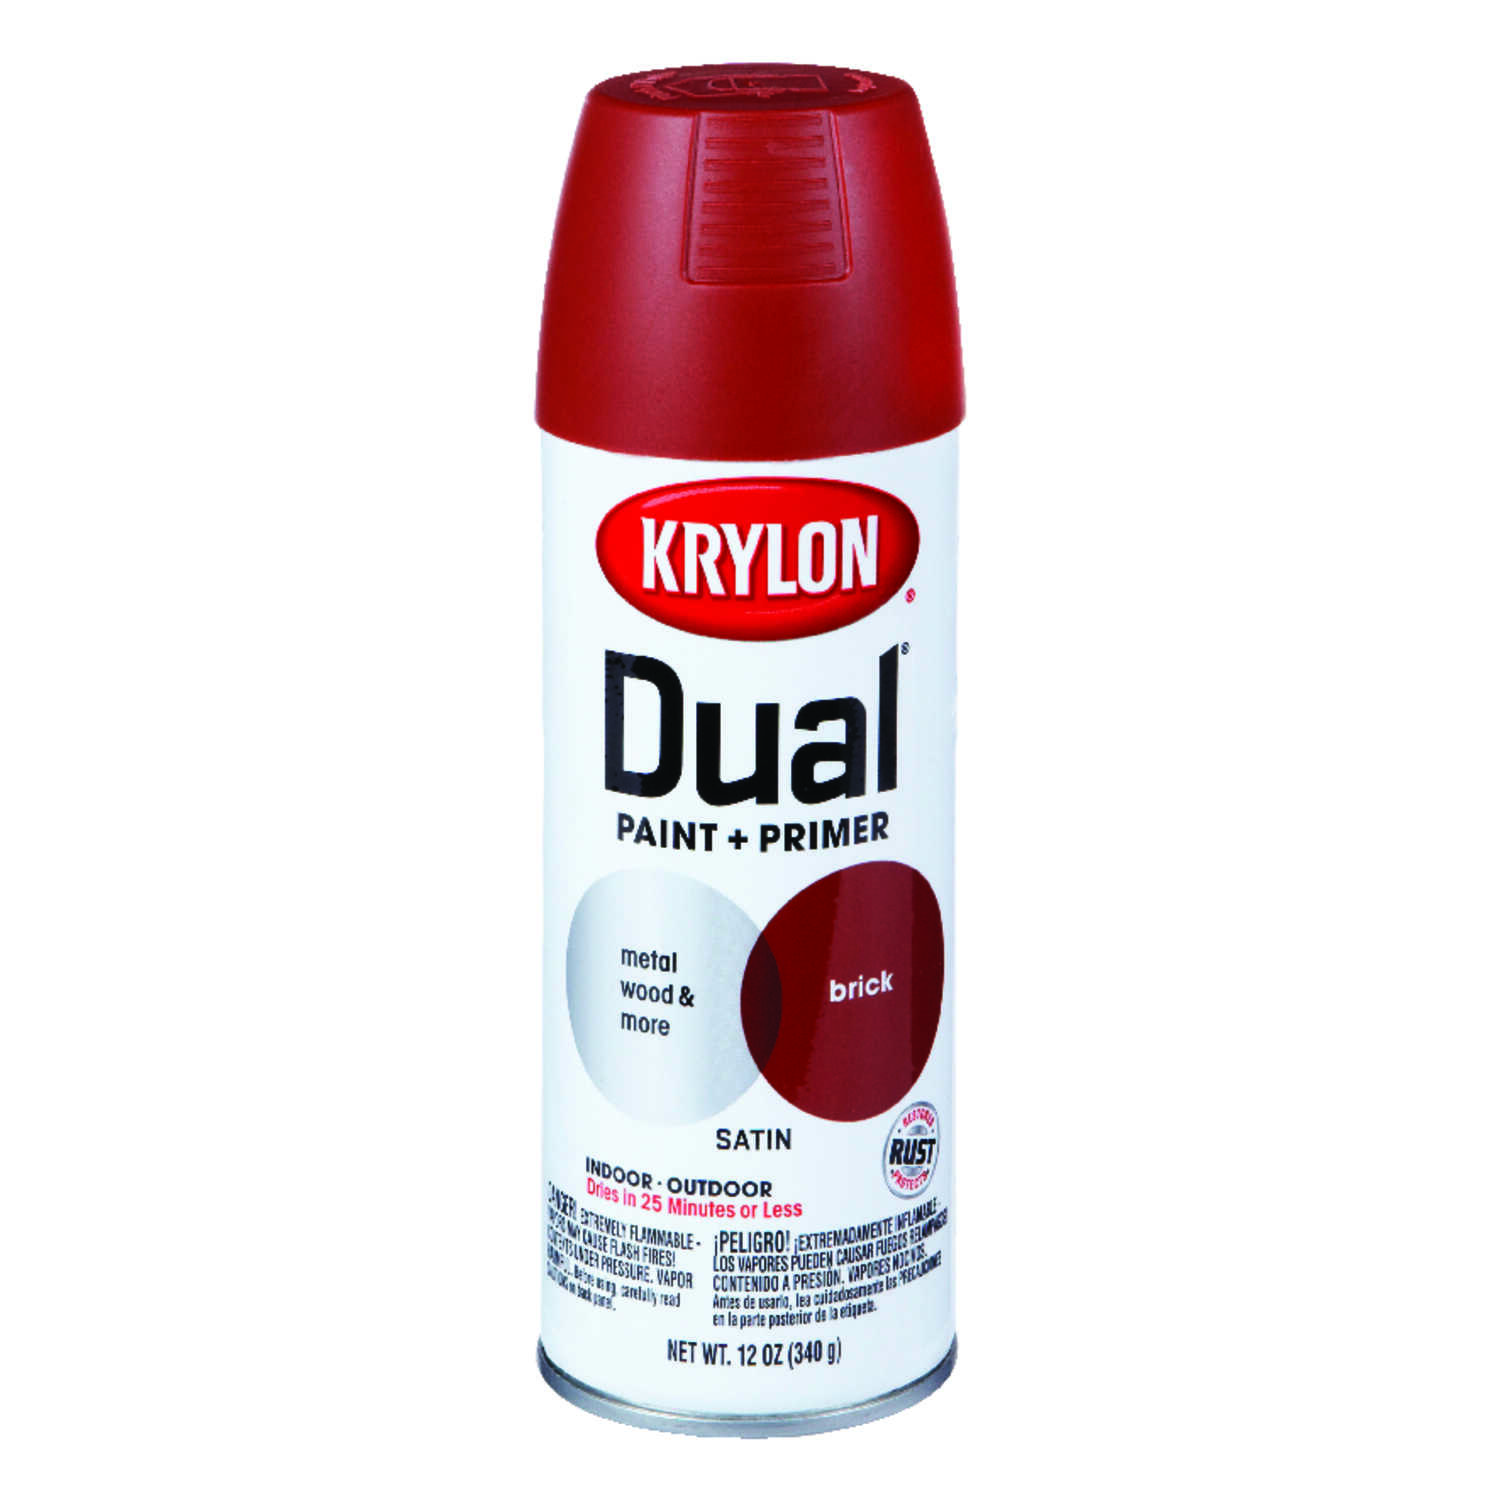 Krylon  Dual  Satin  Paint + Primer Spray Paint  12 oz. Brick